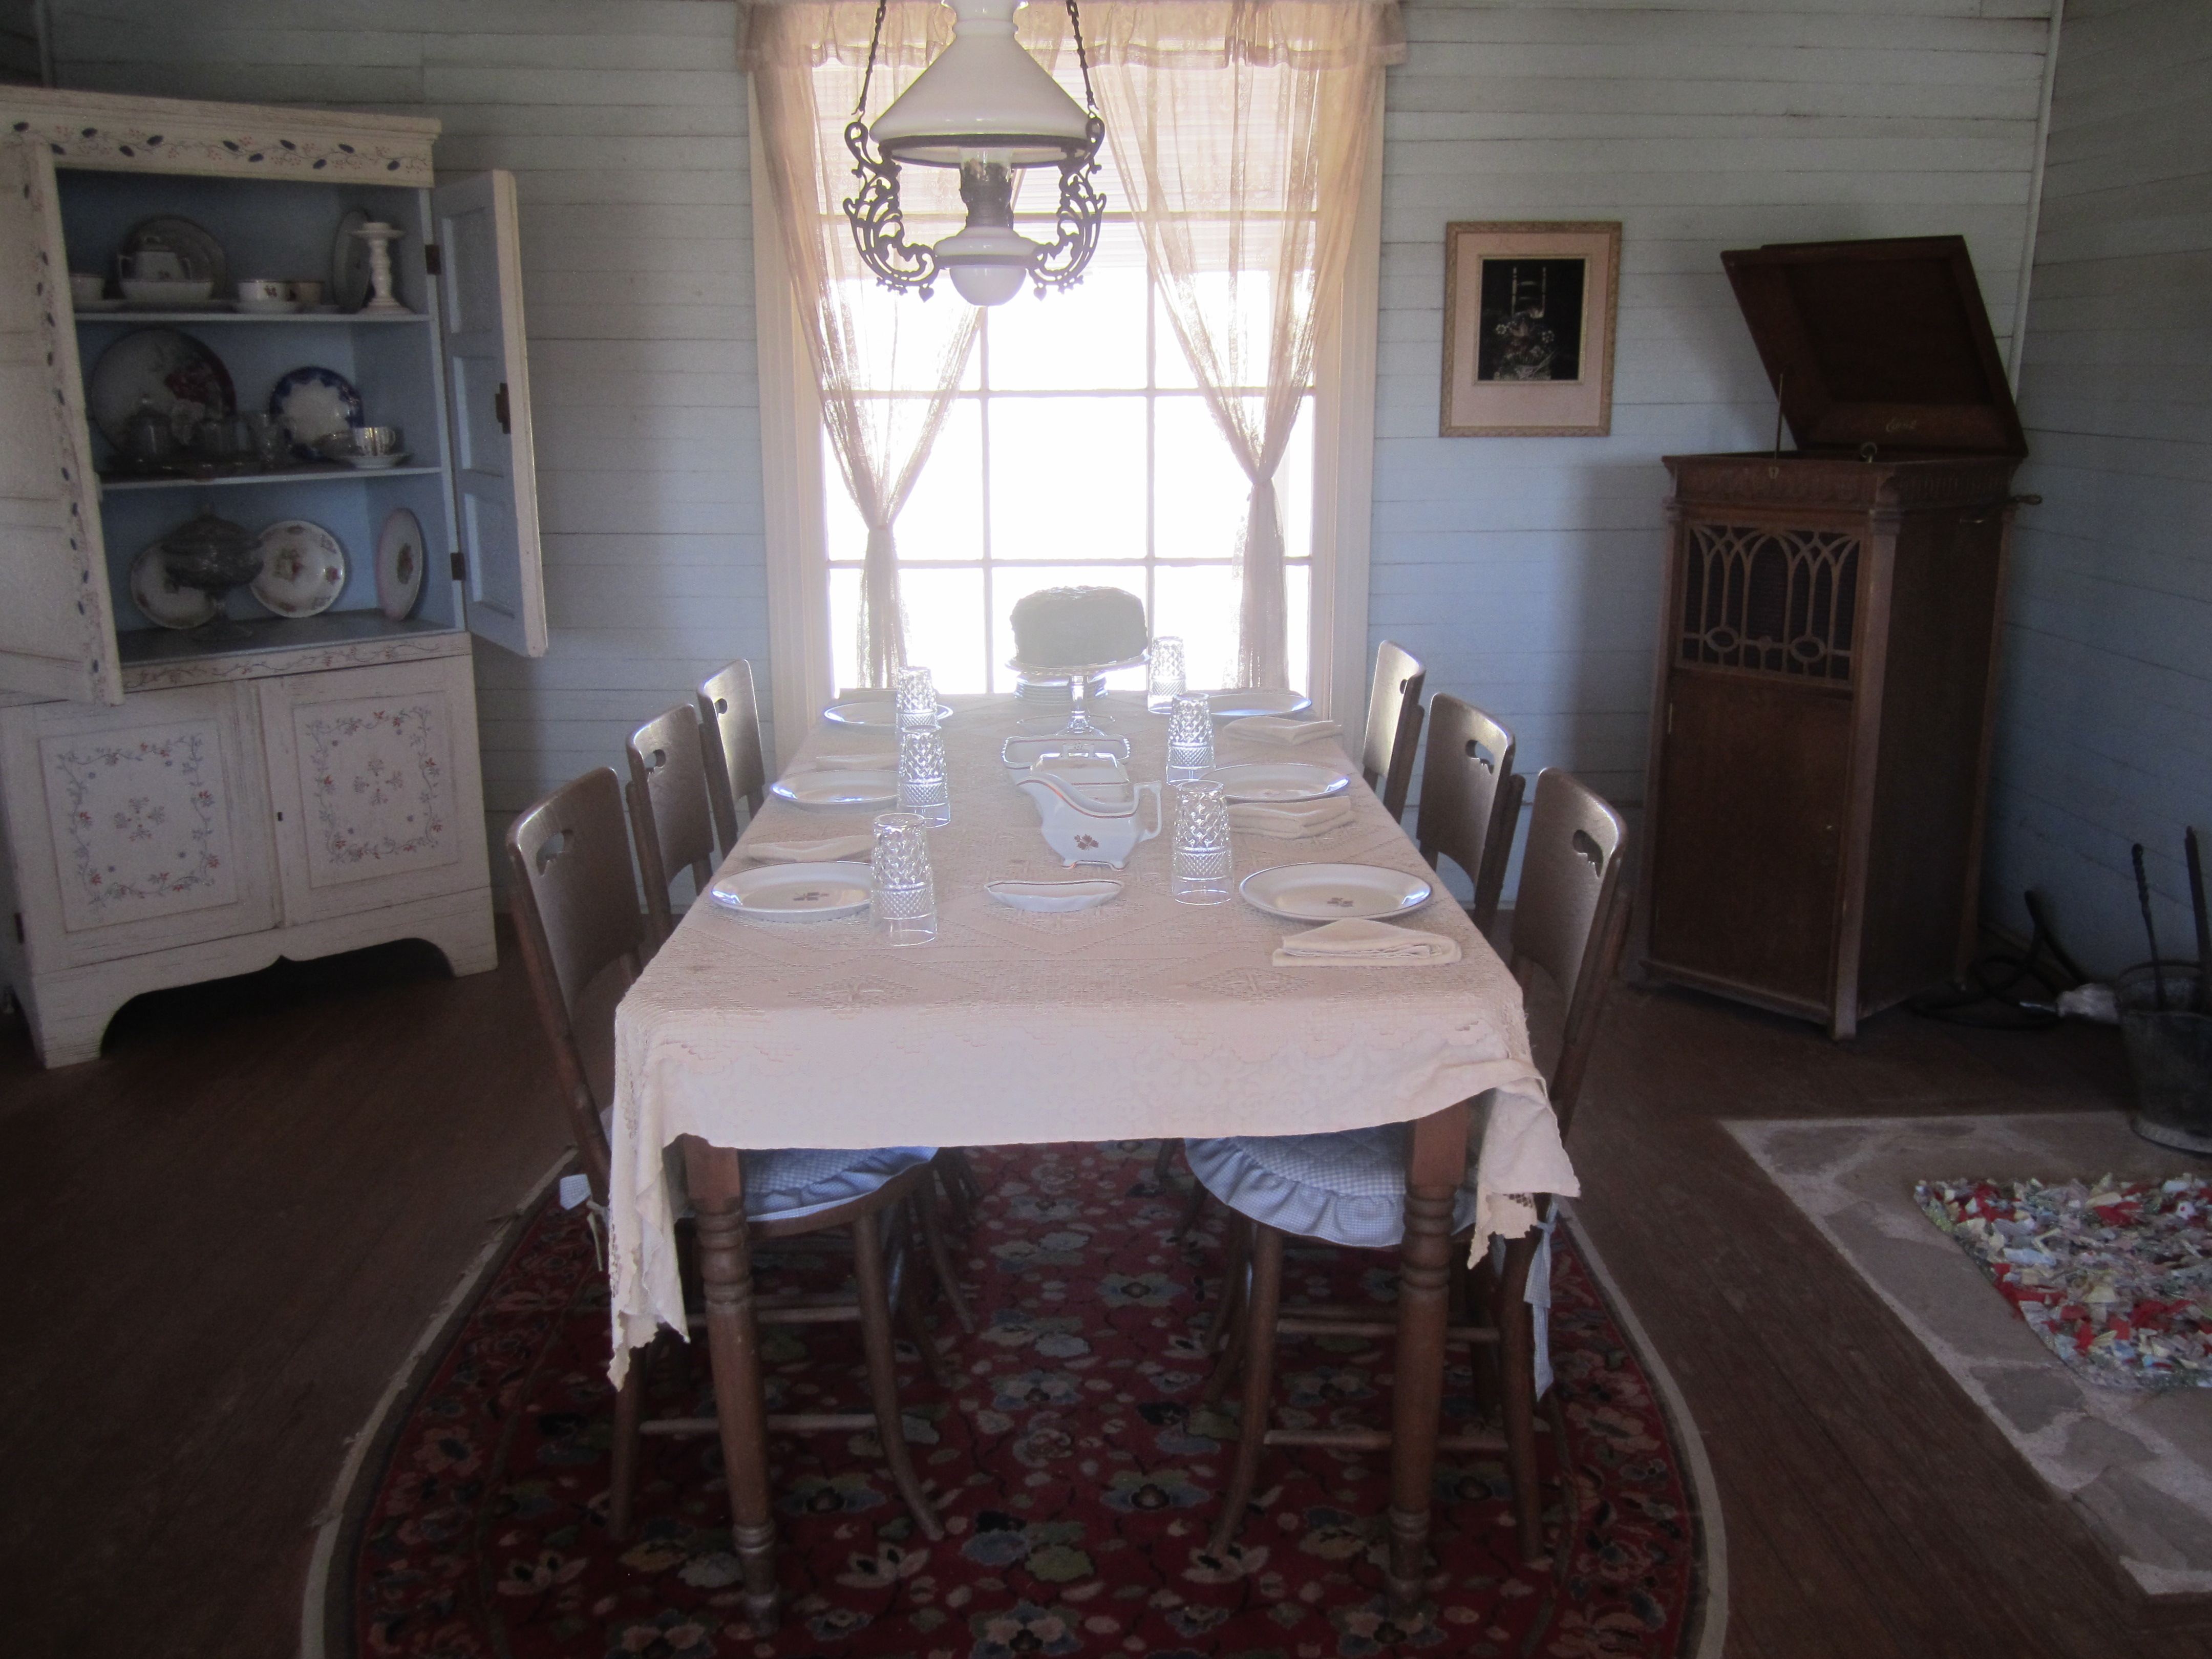 File:Dining Room At Harrell House, Lubbock, TX IMG 1611.JPG